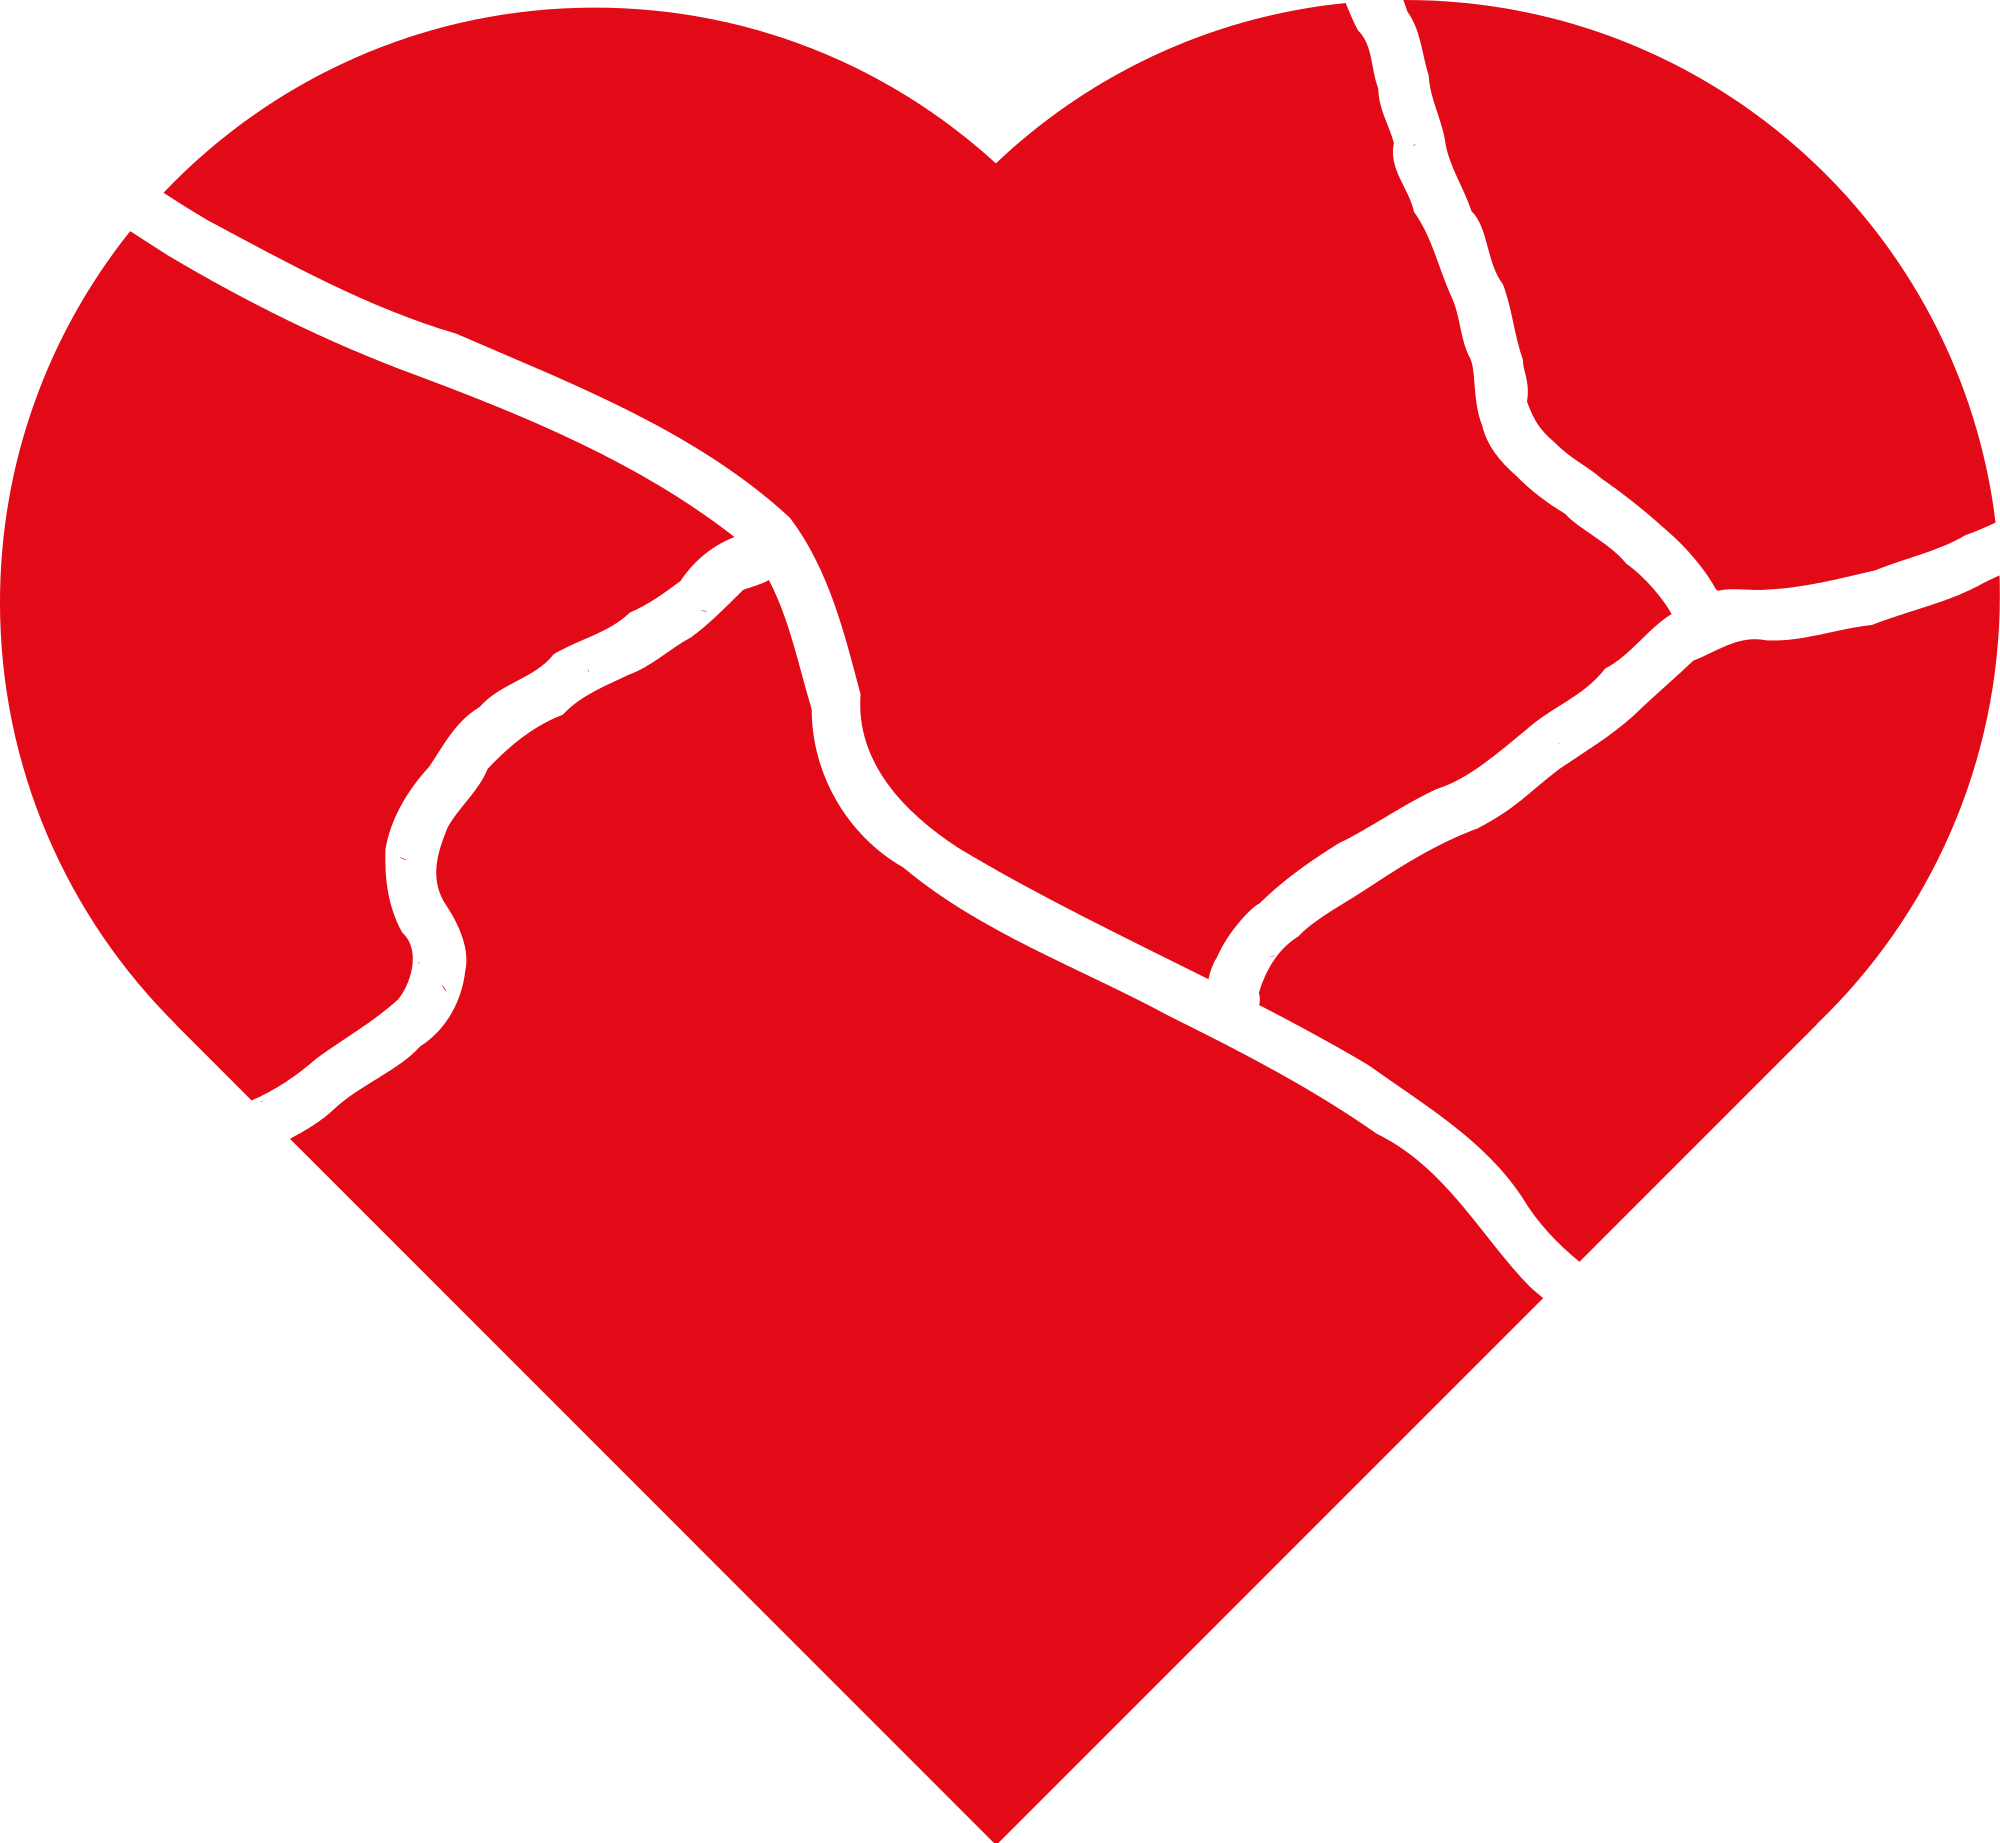 Heart Clipart At Getdrawings Free For Personal Use Heart